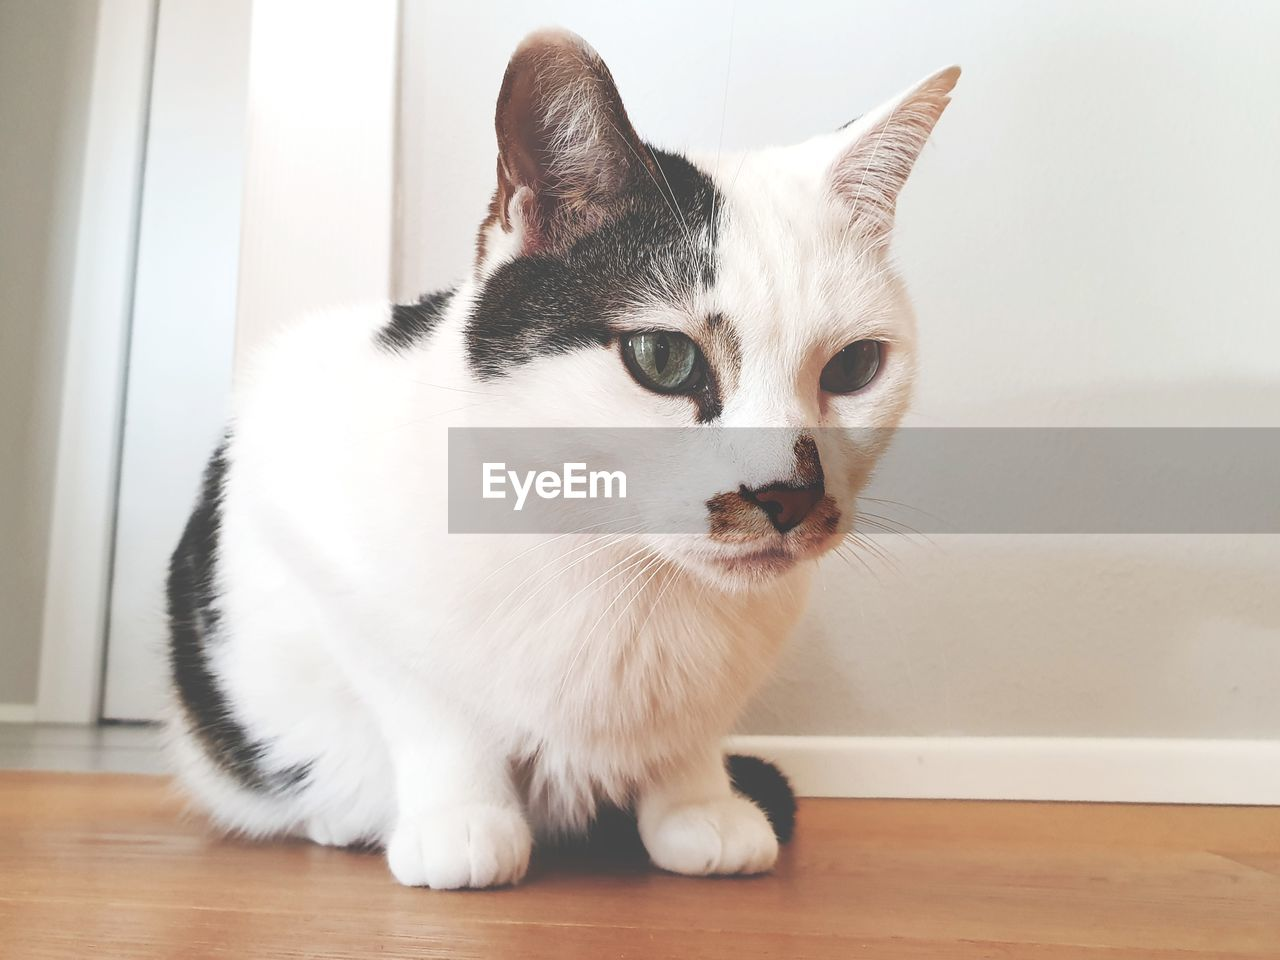 pets, domestic, domestic animals, one animal, animal themes, mammal, domestic cat, cat, animal, feline, vertebrate, indoors, no people, portrait, home interior, whisker, white color, looking, close-up, table